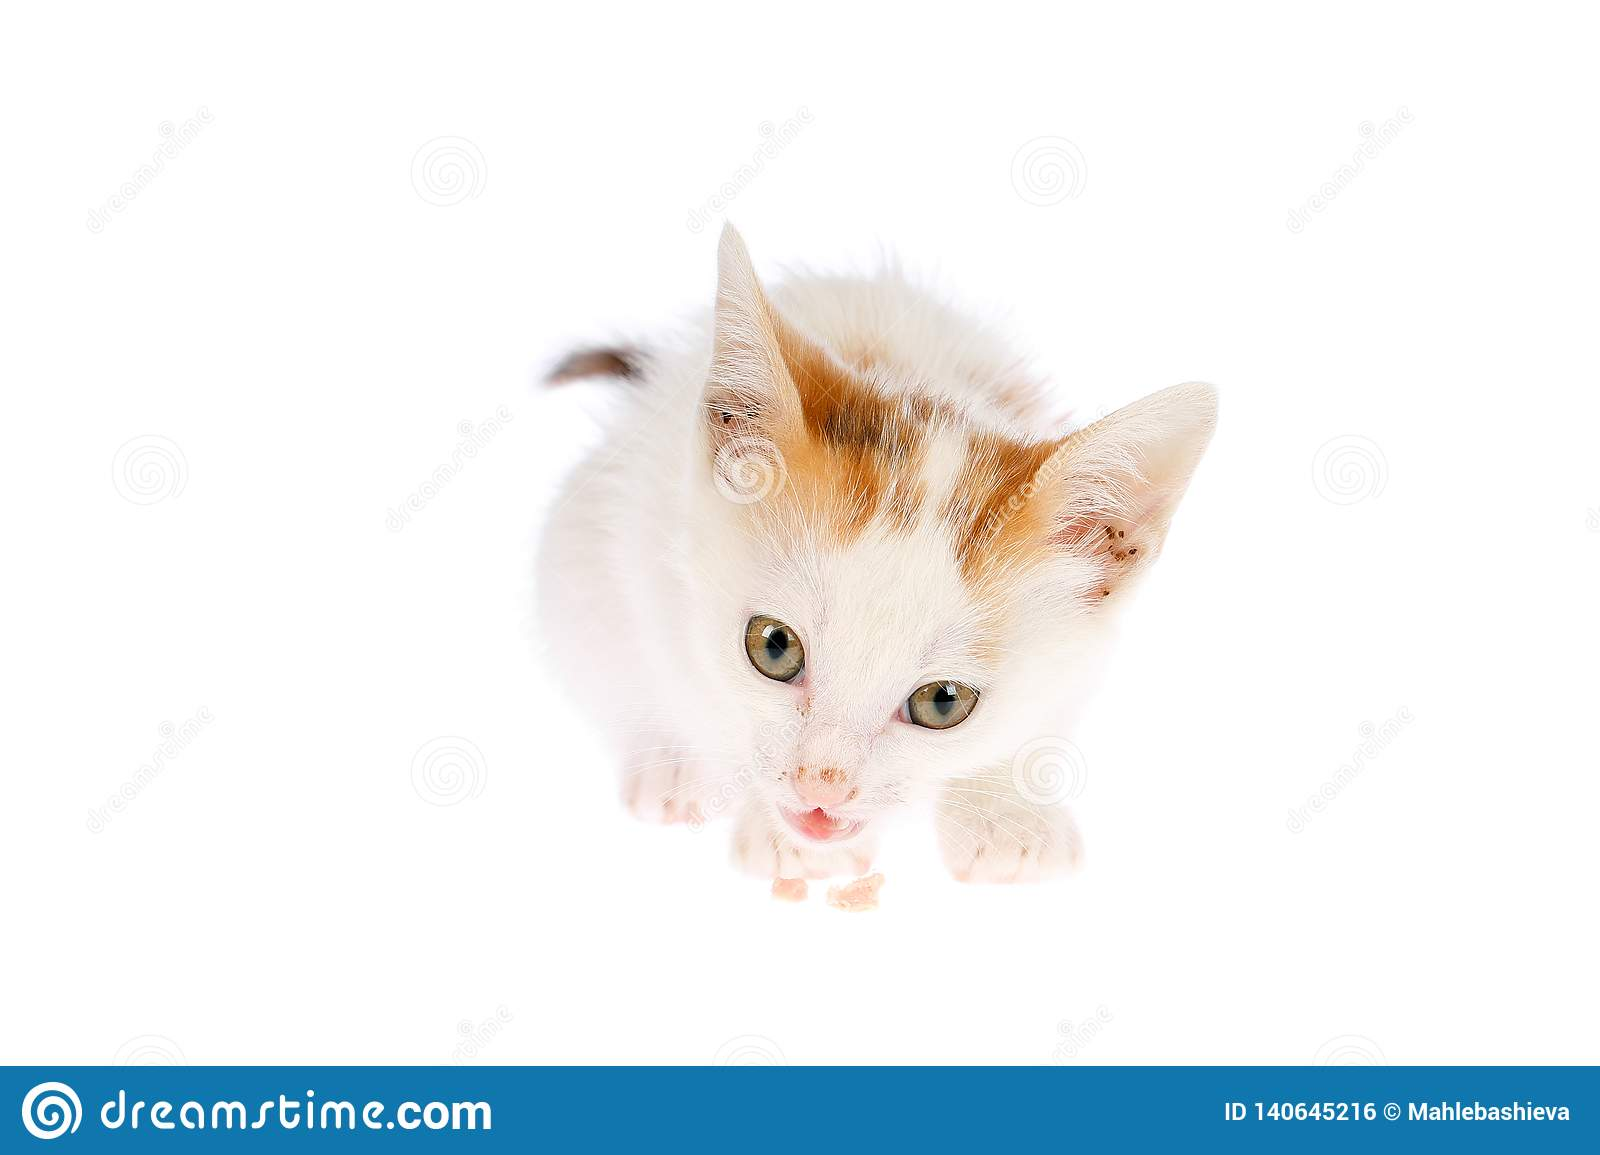 Cute two months old calico kitten eating meat bit and looking to the camera, isolated on white background. Homemade and raw food cats diet concept.